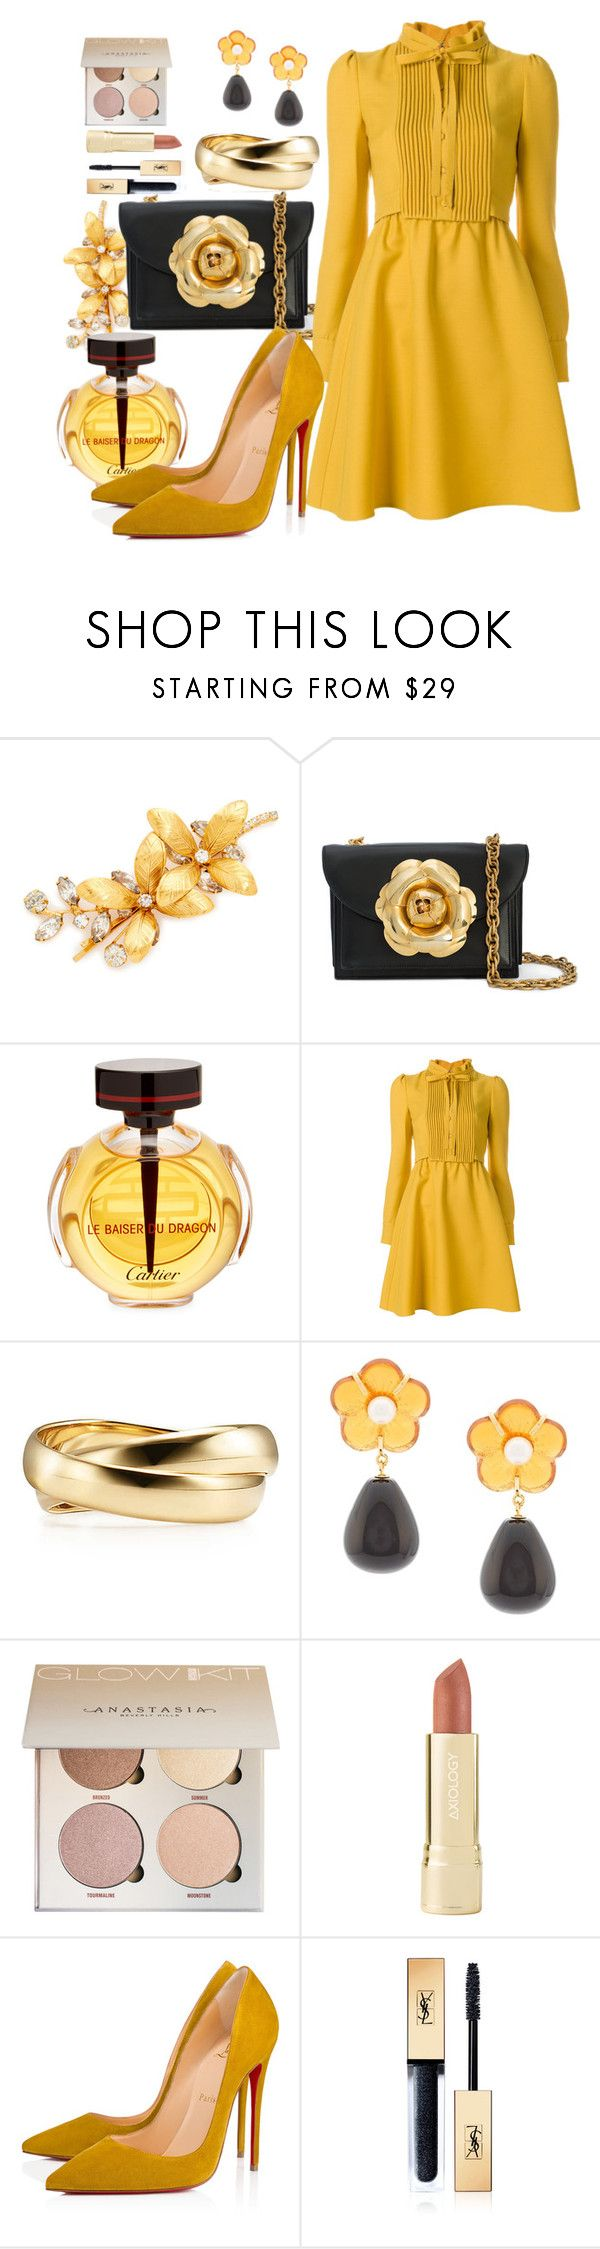 """Sun"" by st-edmundcollege ❤ liked on Polyvore featuring Jennifer Behr, Oscar de la Renta, Cartier, Valentino, Lizzie Fortunato, Axiology, Christian Louboutin and Yves Saint Laurent"